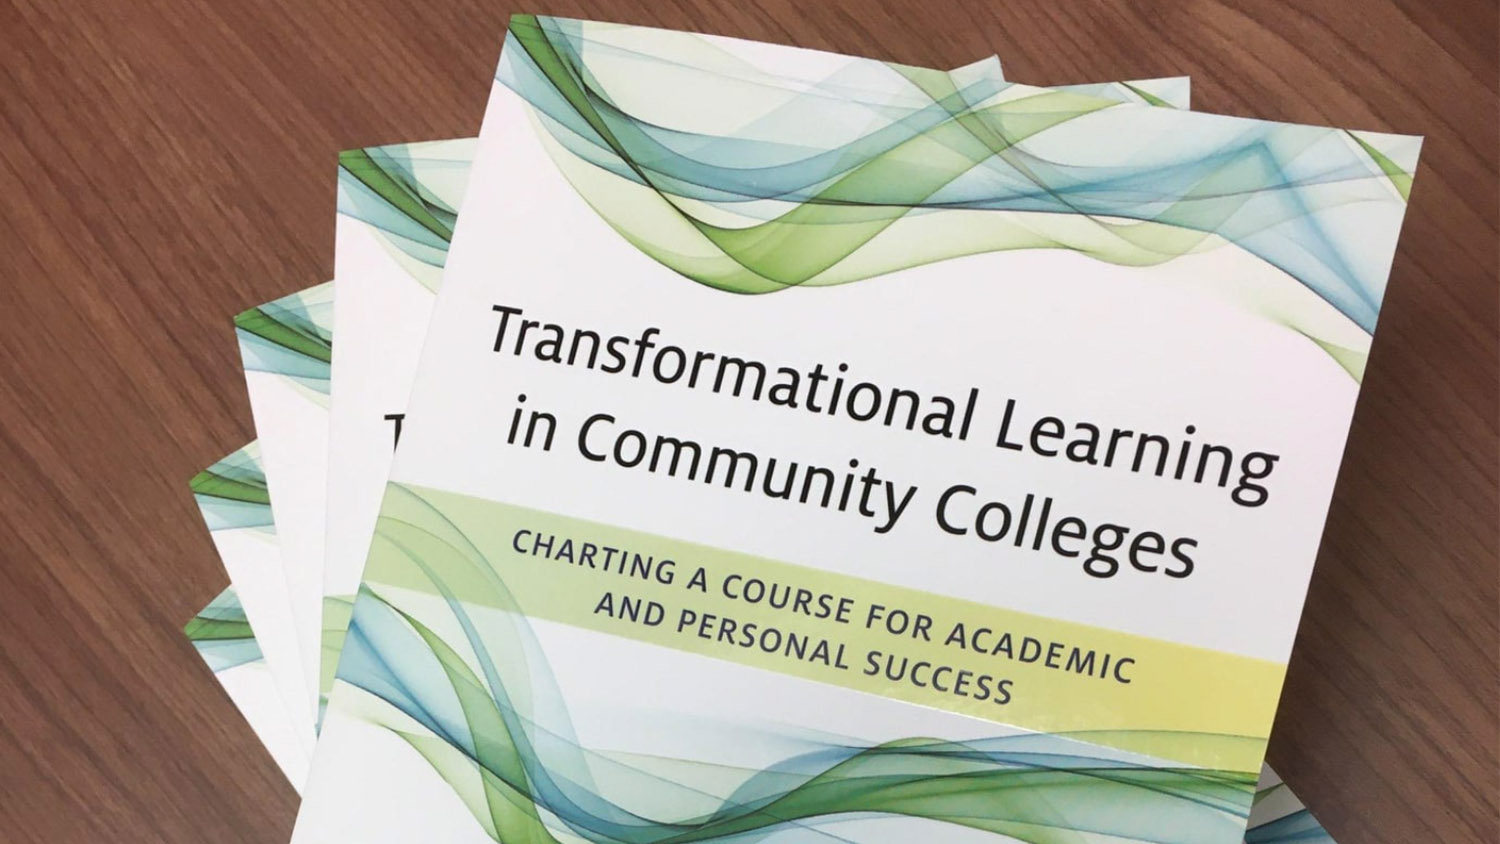 Several copies of Transformational Learning in Community Colleges: Charting a Course for Academic and Personal Success, a new book co-authored by Chad Hoggan, Ed.D.